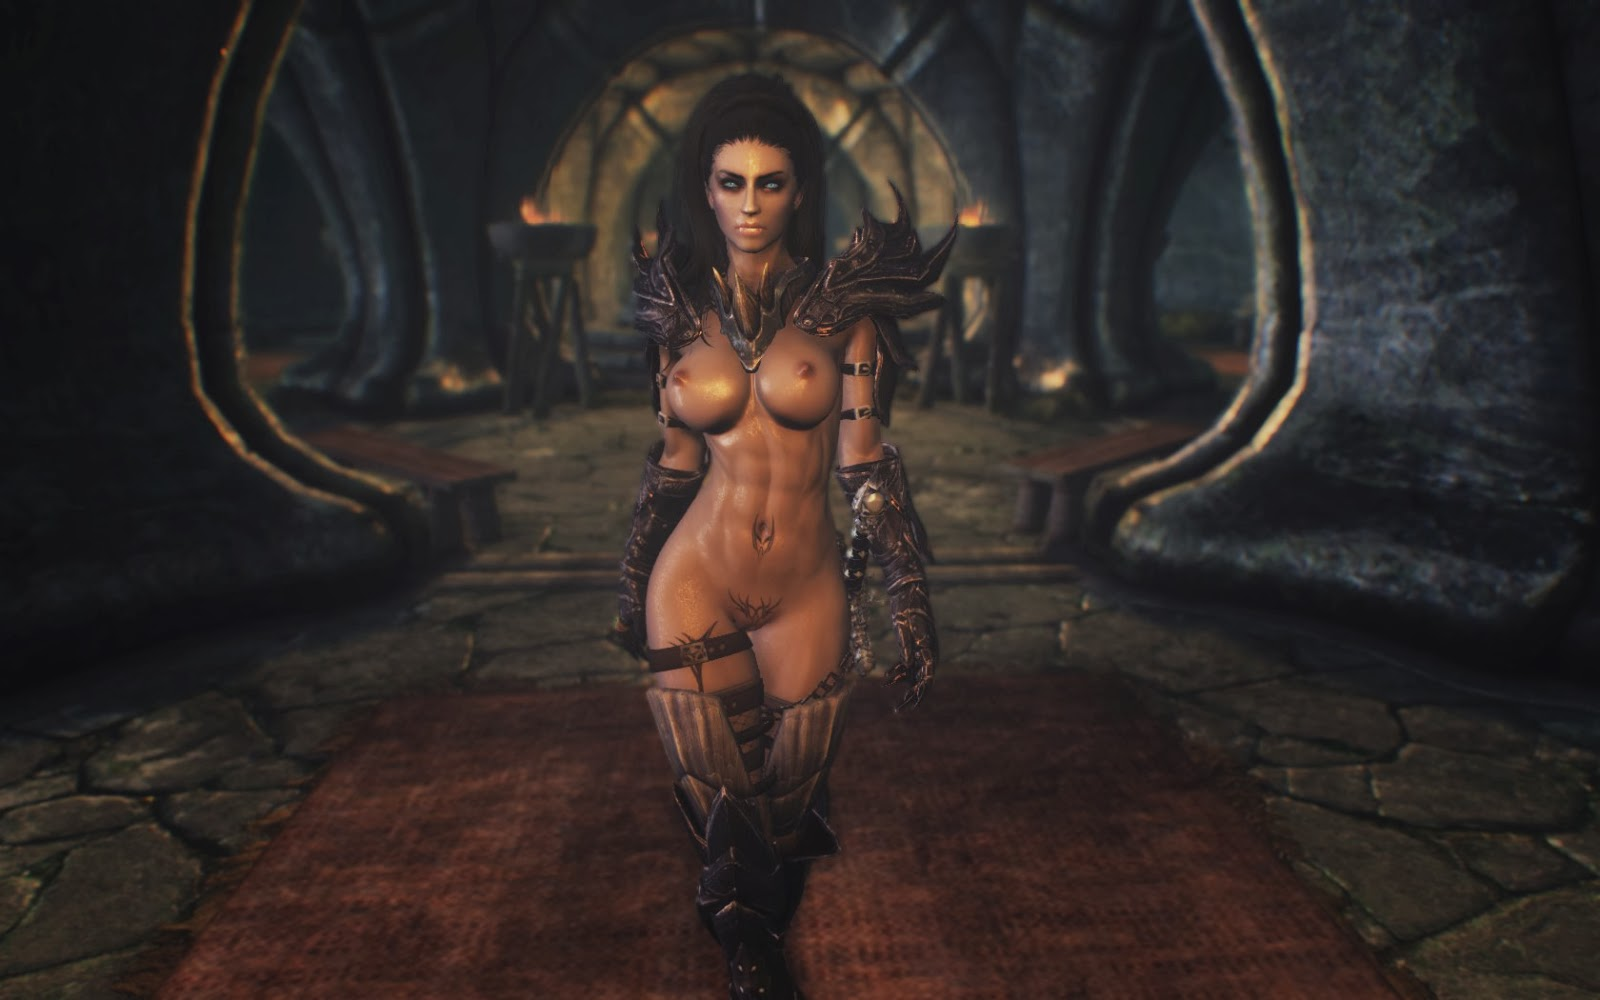 The elder scrolls nude mods Thanks